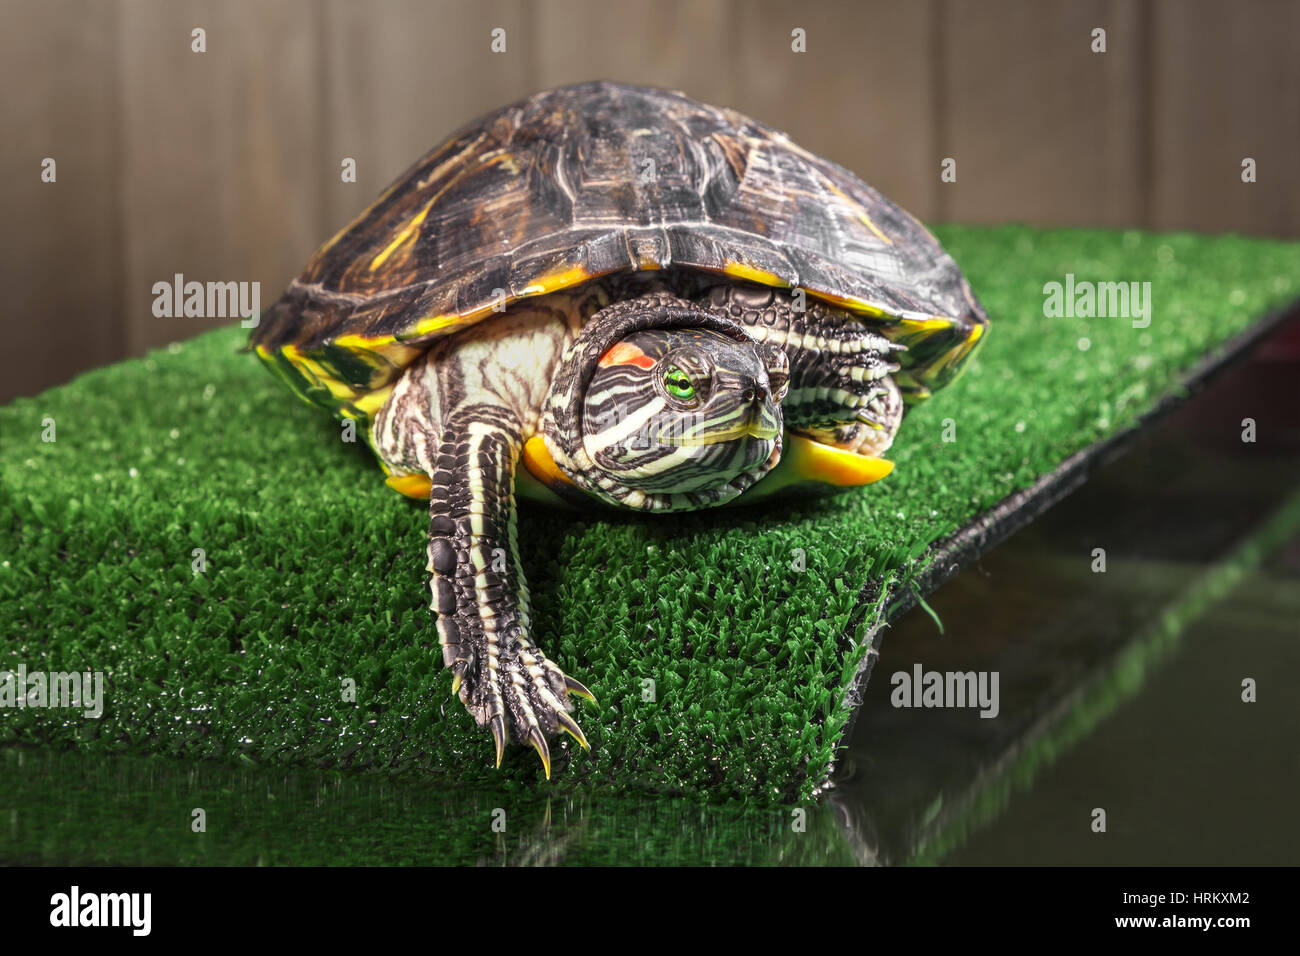 Red-eared slider turtle on the bridge with artificial. Stock Photo